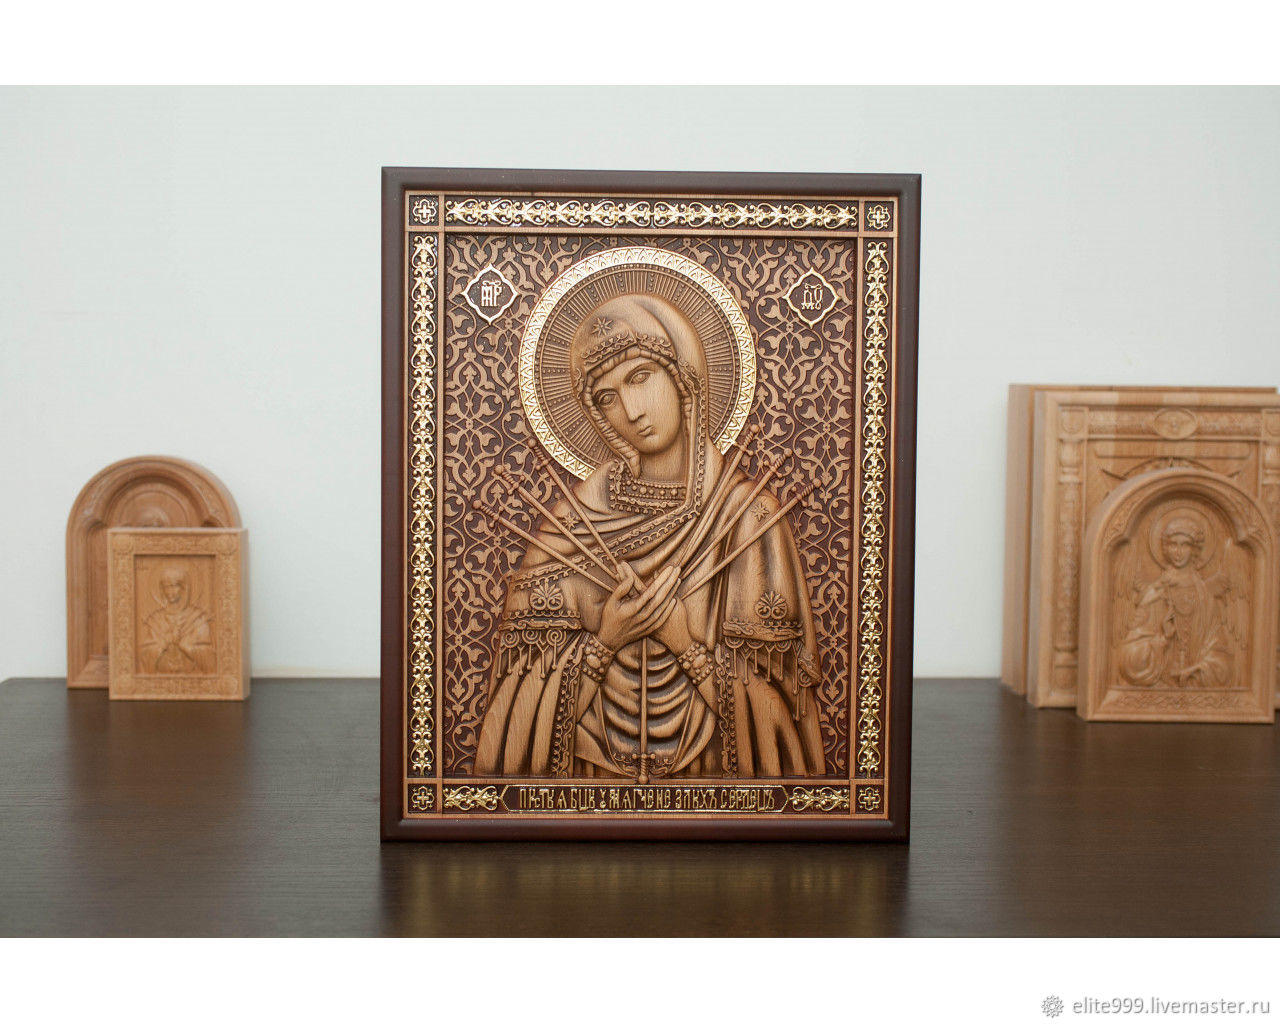 Theotokos Semistrelna (potal) size 400x500 mm, price 7000r., in stock t. 89236905757, Whats App 89087961144 Produced in Russia, made with a soul! izdereva55.ru